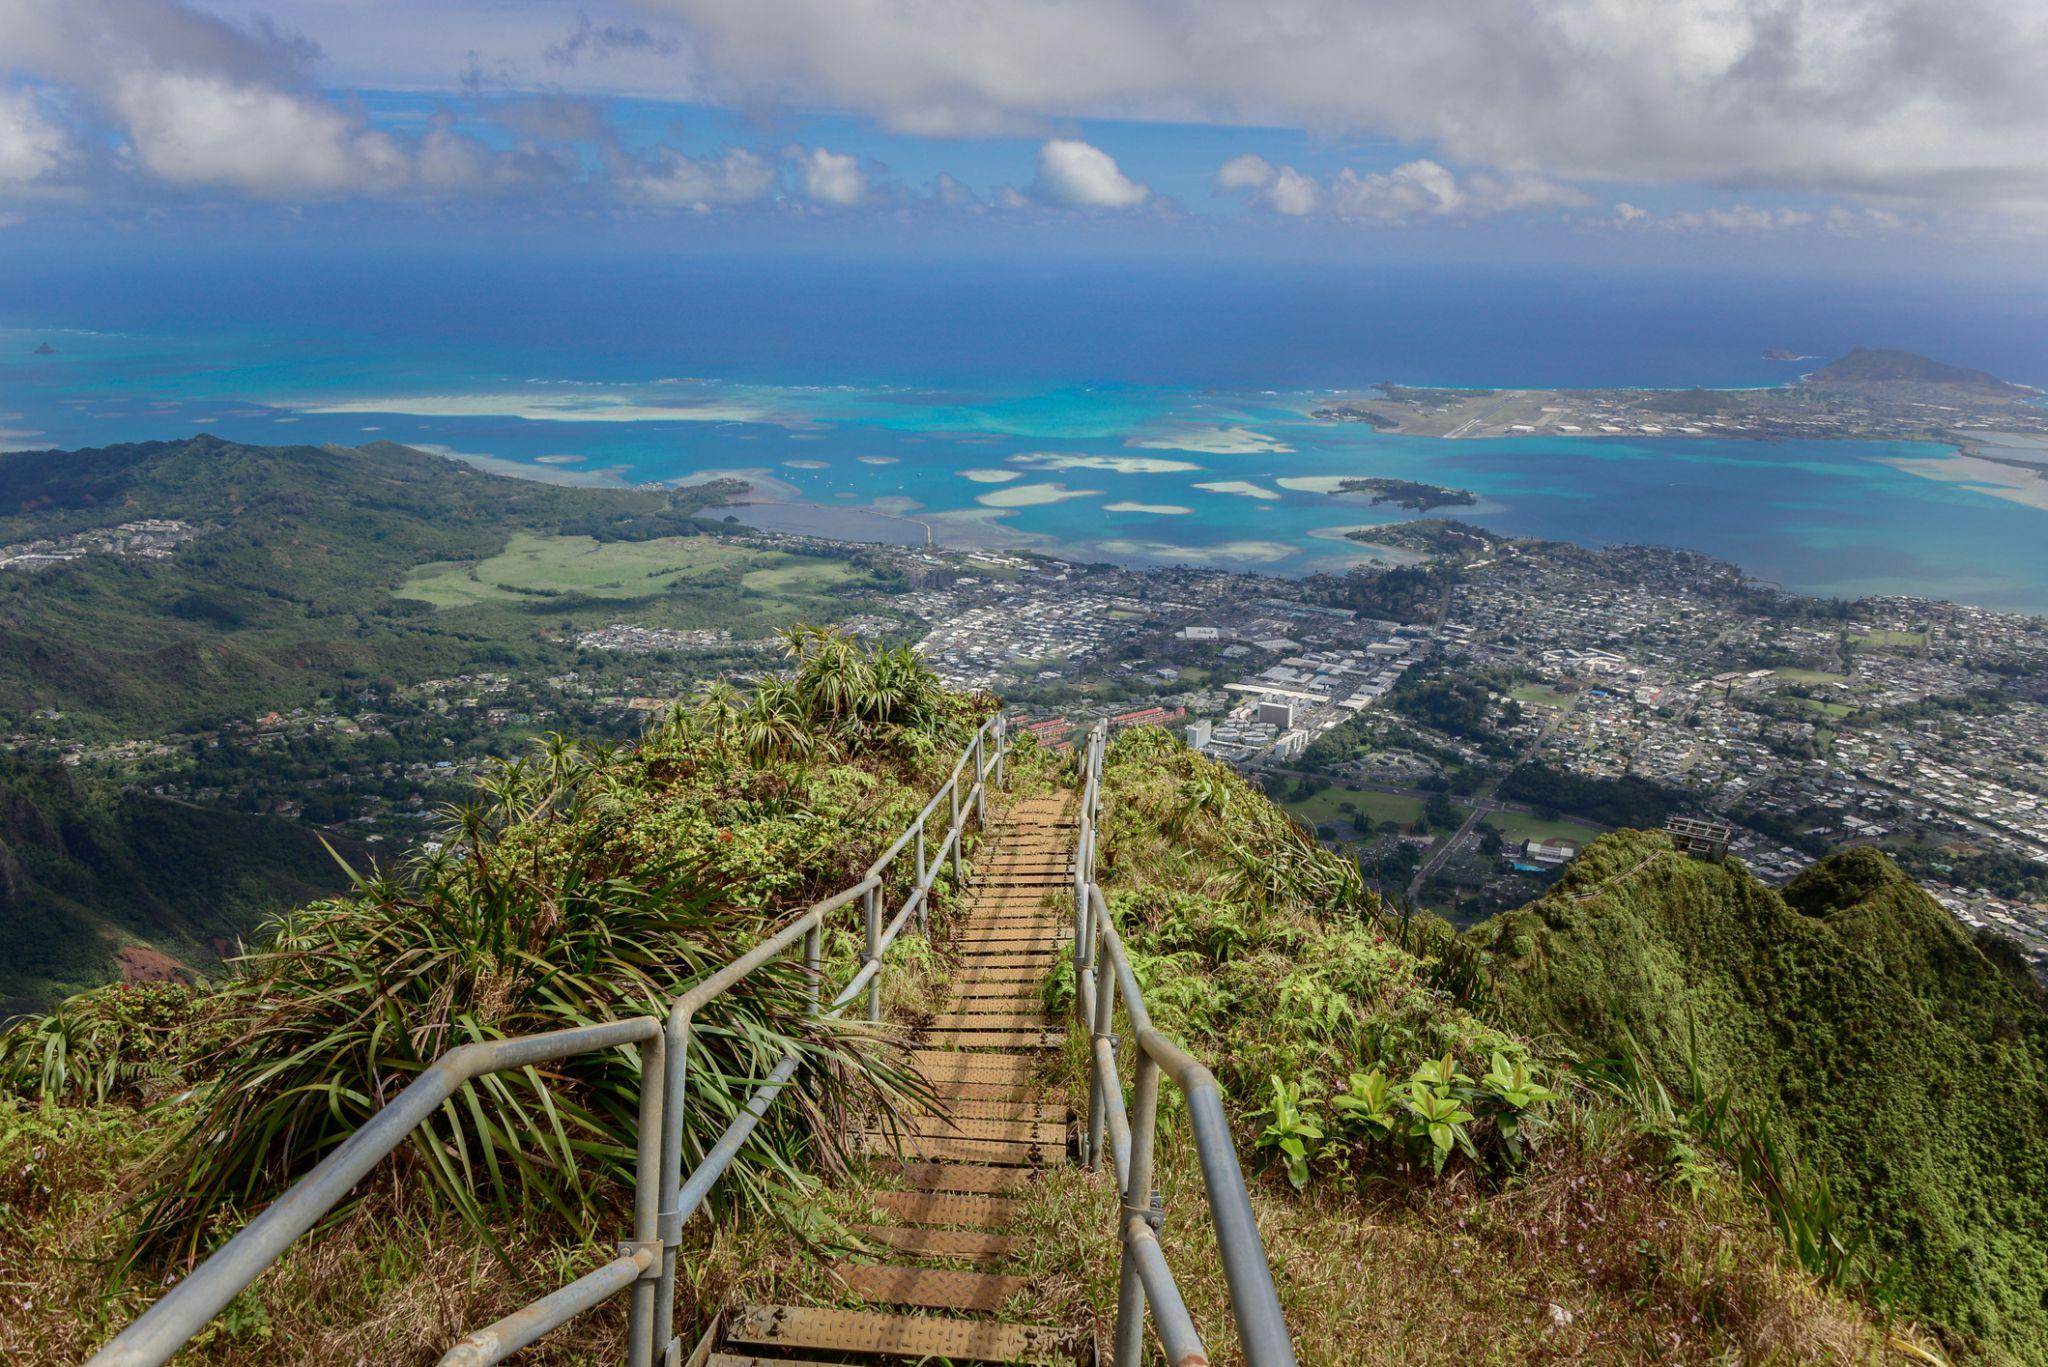 Hawaii mayor seeks $1M to dismantle infamous 'Stairway to Heaven'